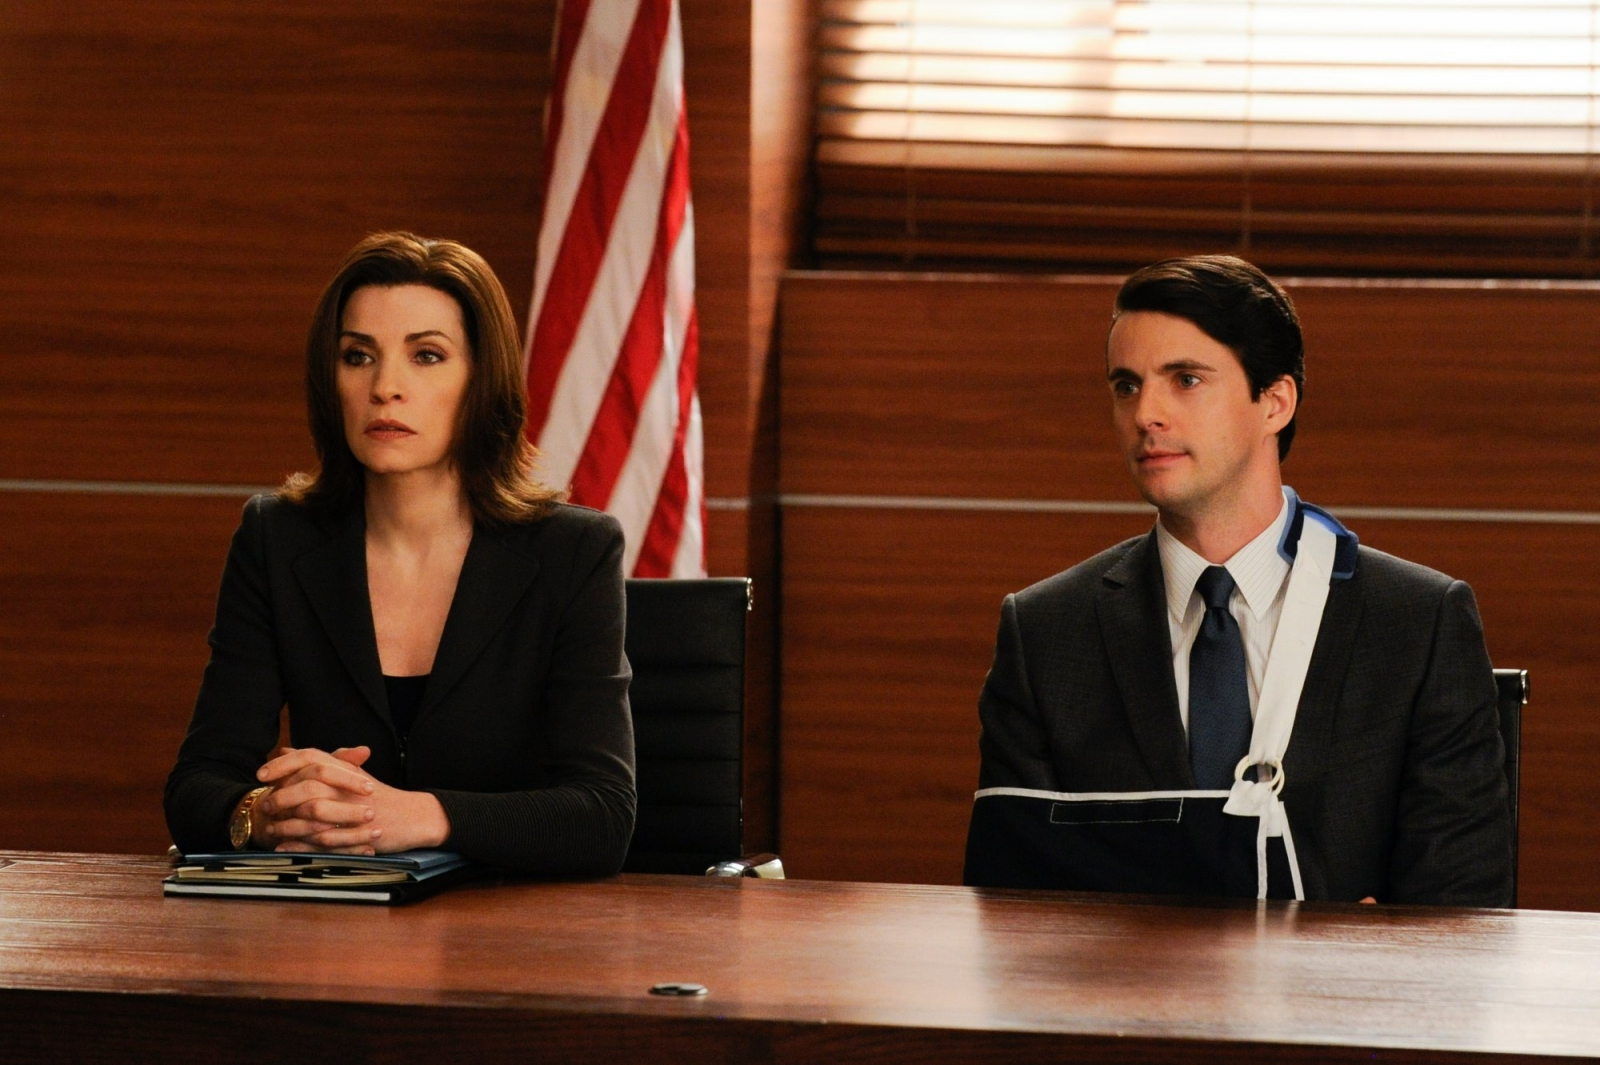 The Good Wife Season 6 Spoilers: Will Lemond Bishop Kill Cary in Episode 2 'Trust Issues'